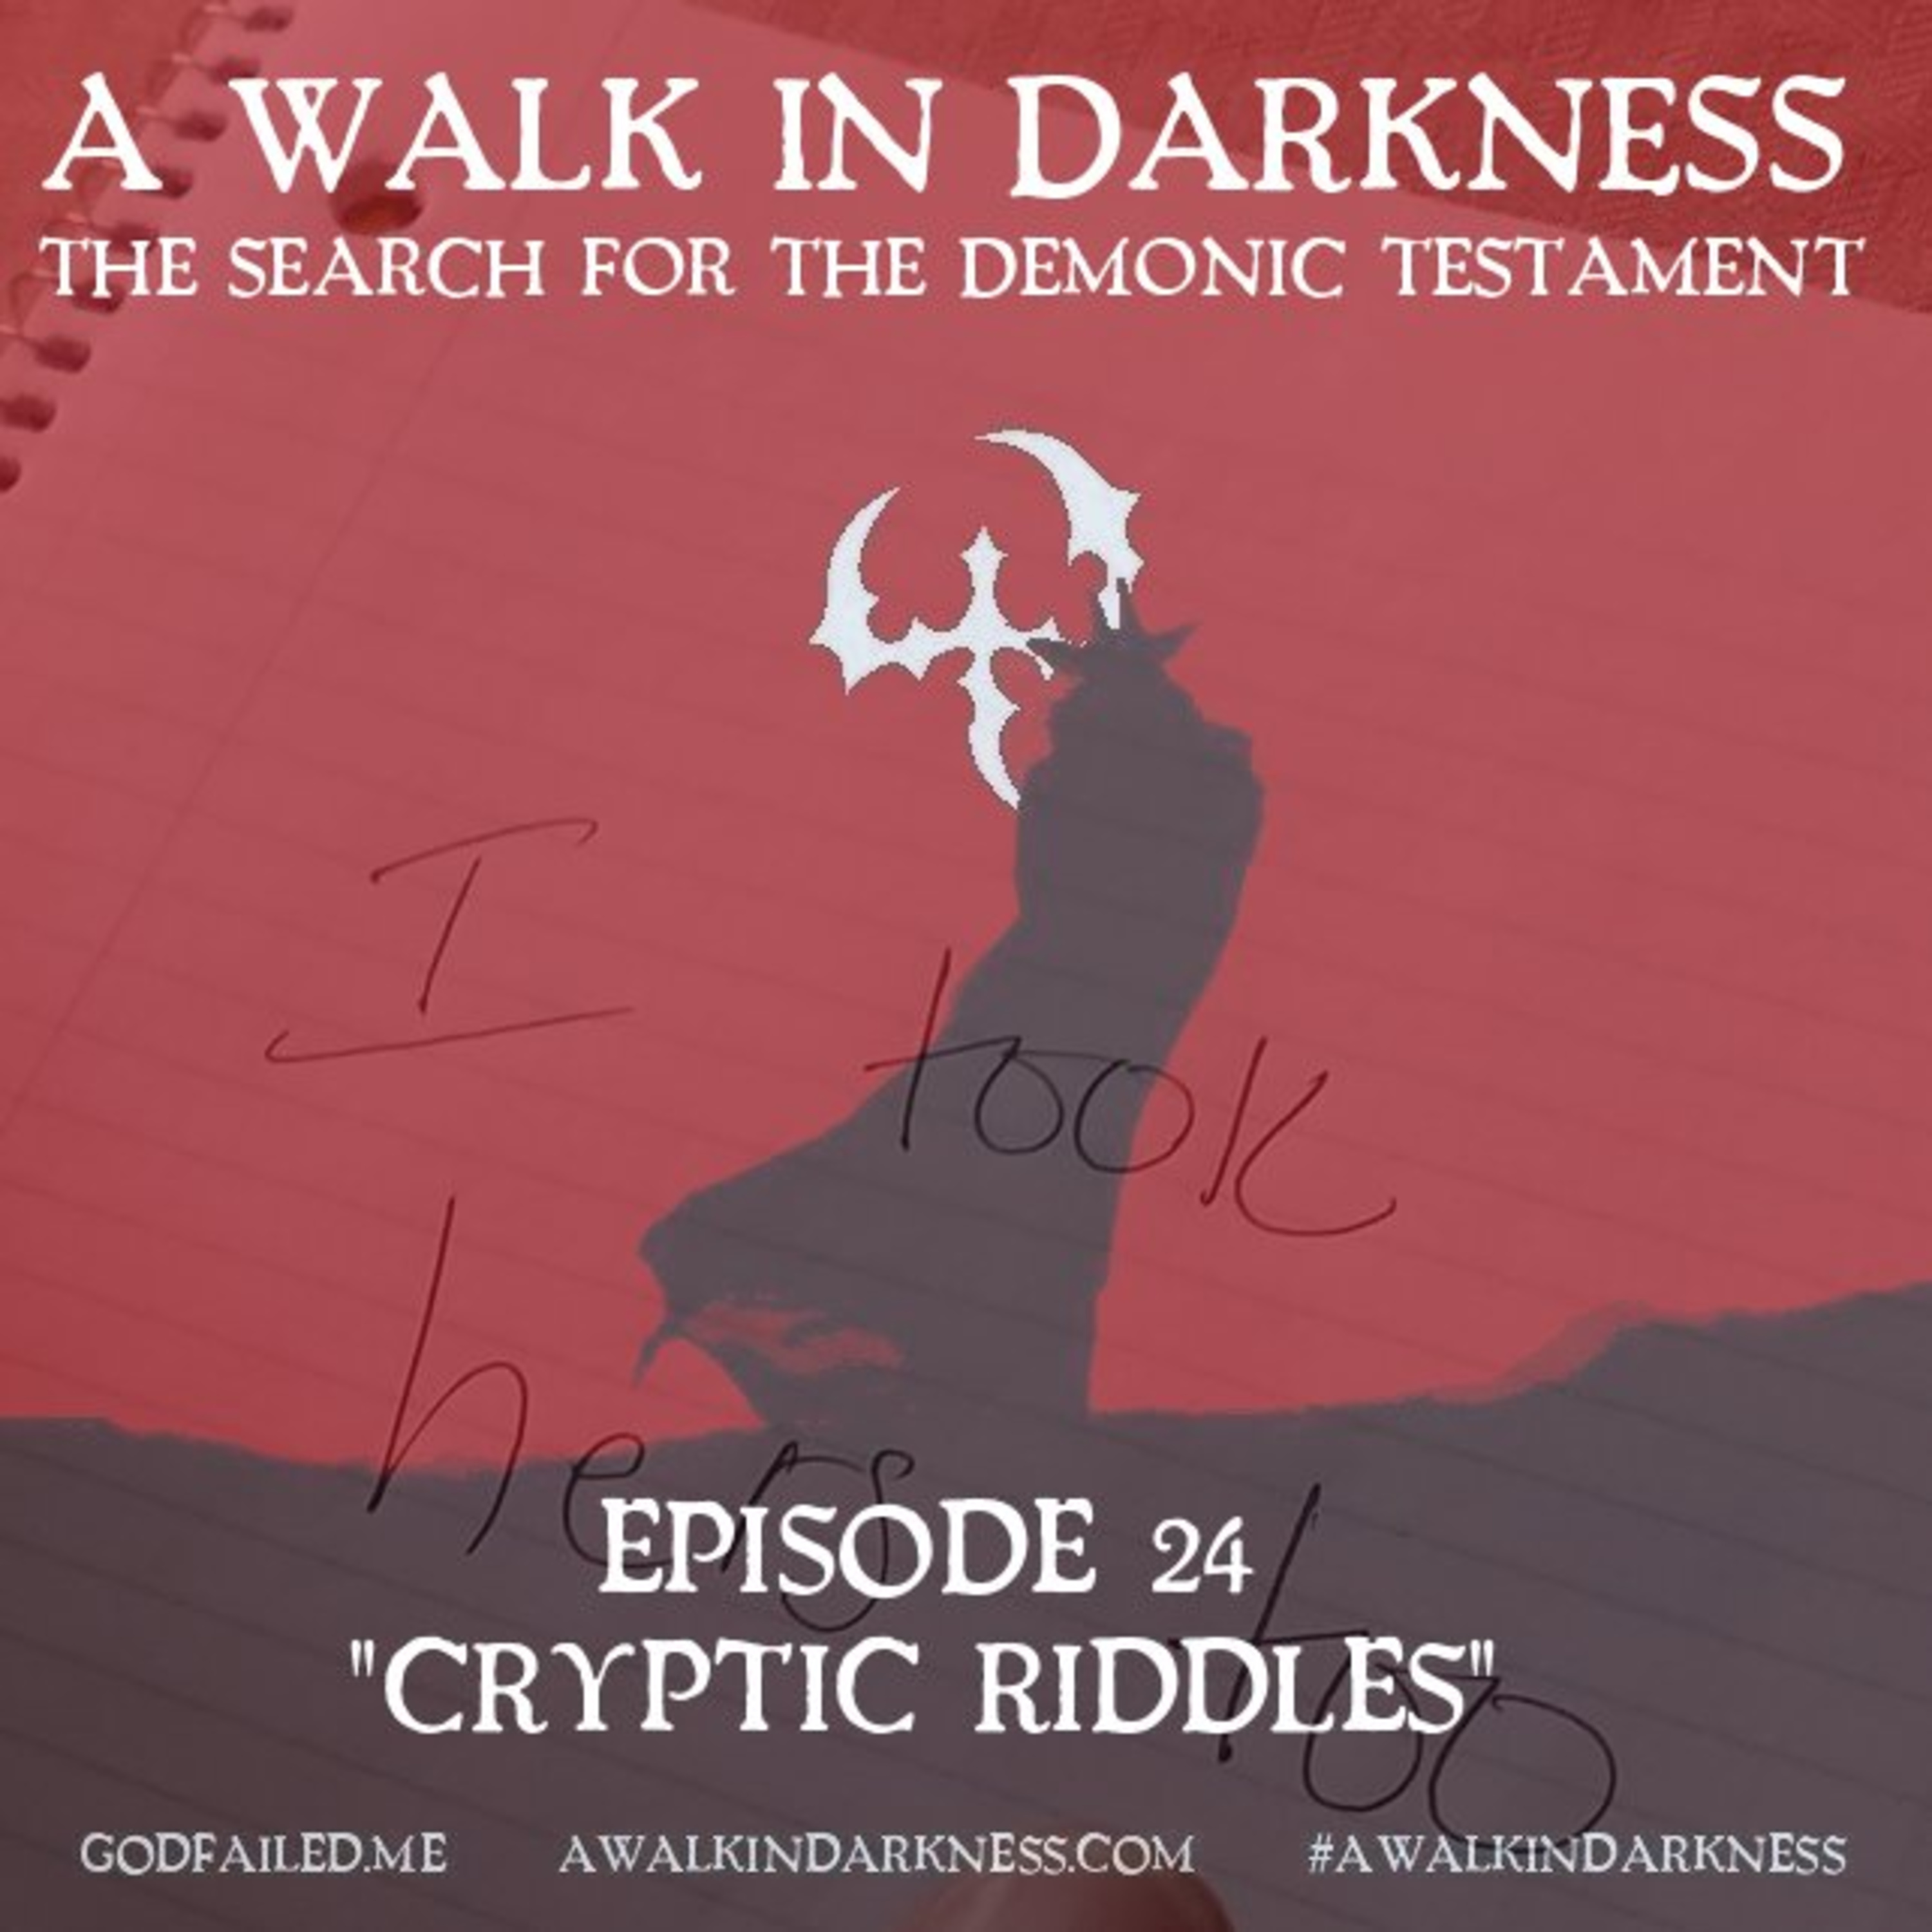 Cryptic Riddles (Episode 24)